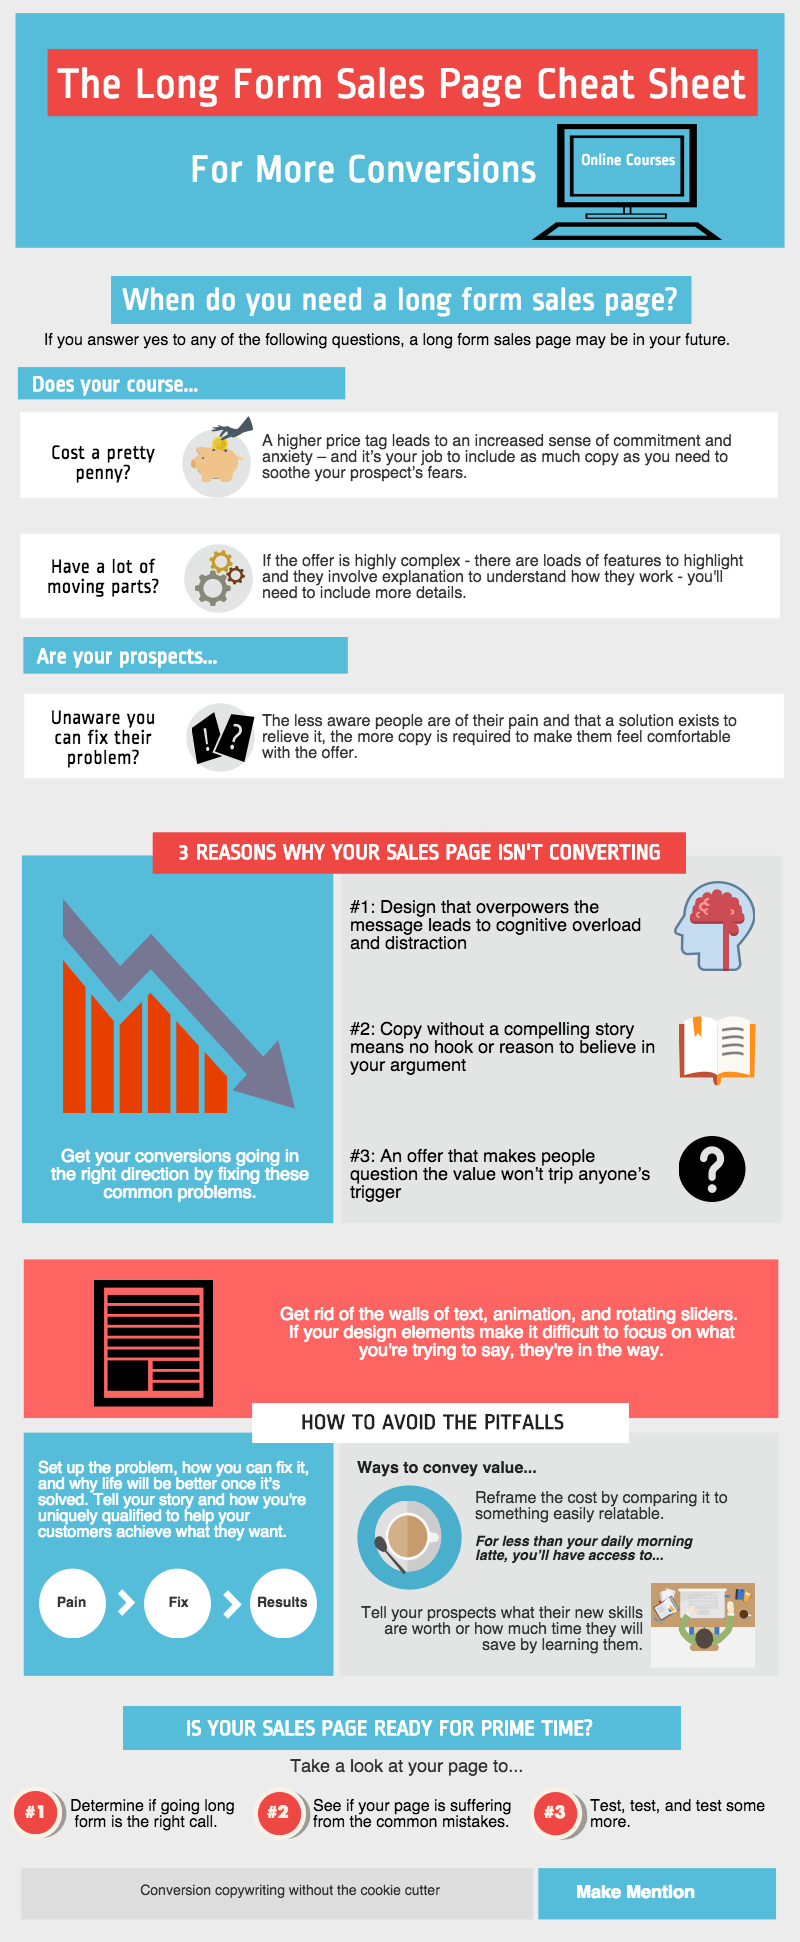 long form sales page cheat sheet for more conversions this cheat